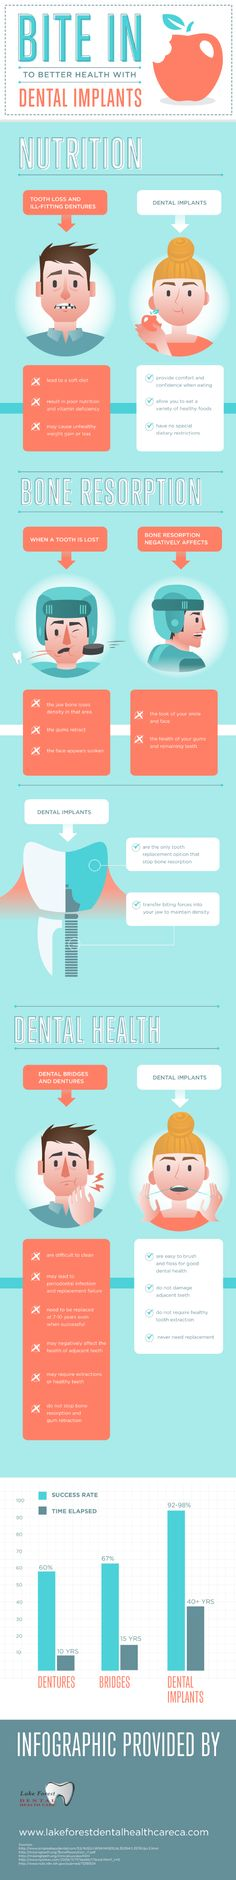 This implantology infographic from a dentist in Lake Forest shows you why dental implants are a great option.